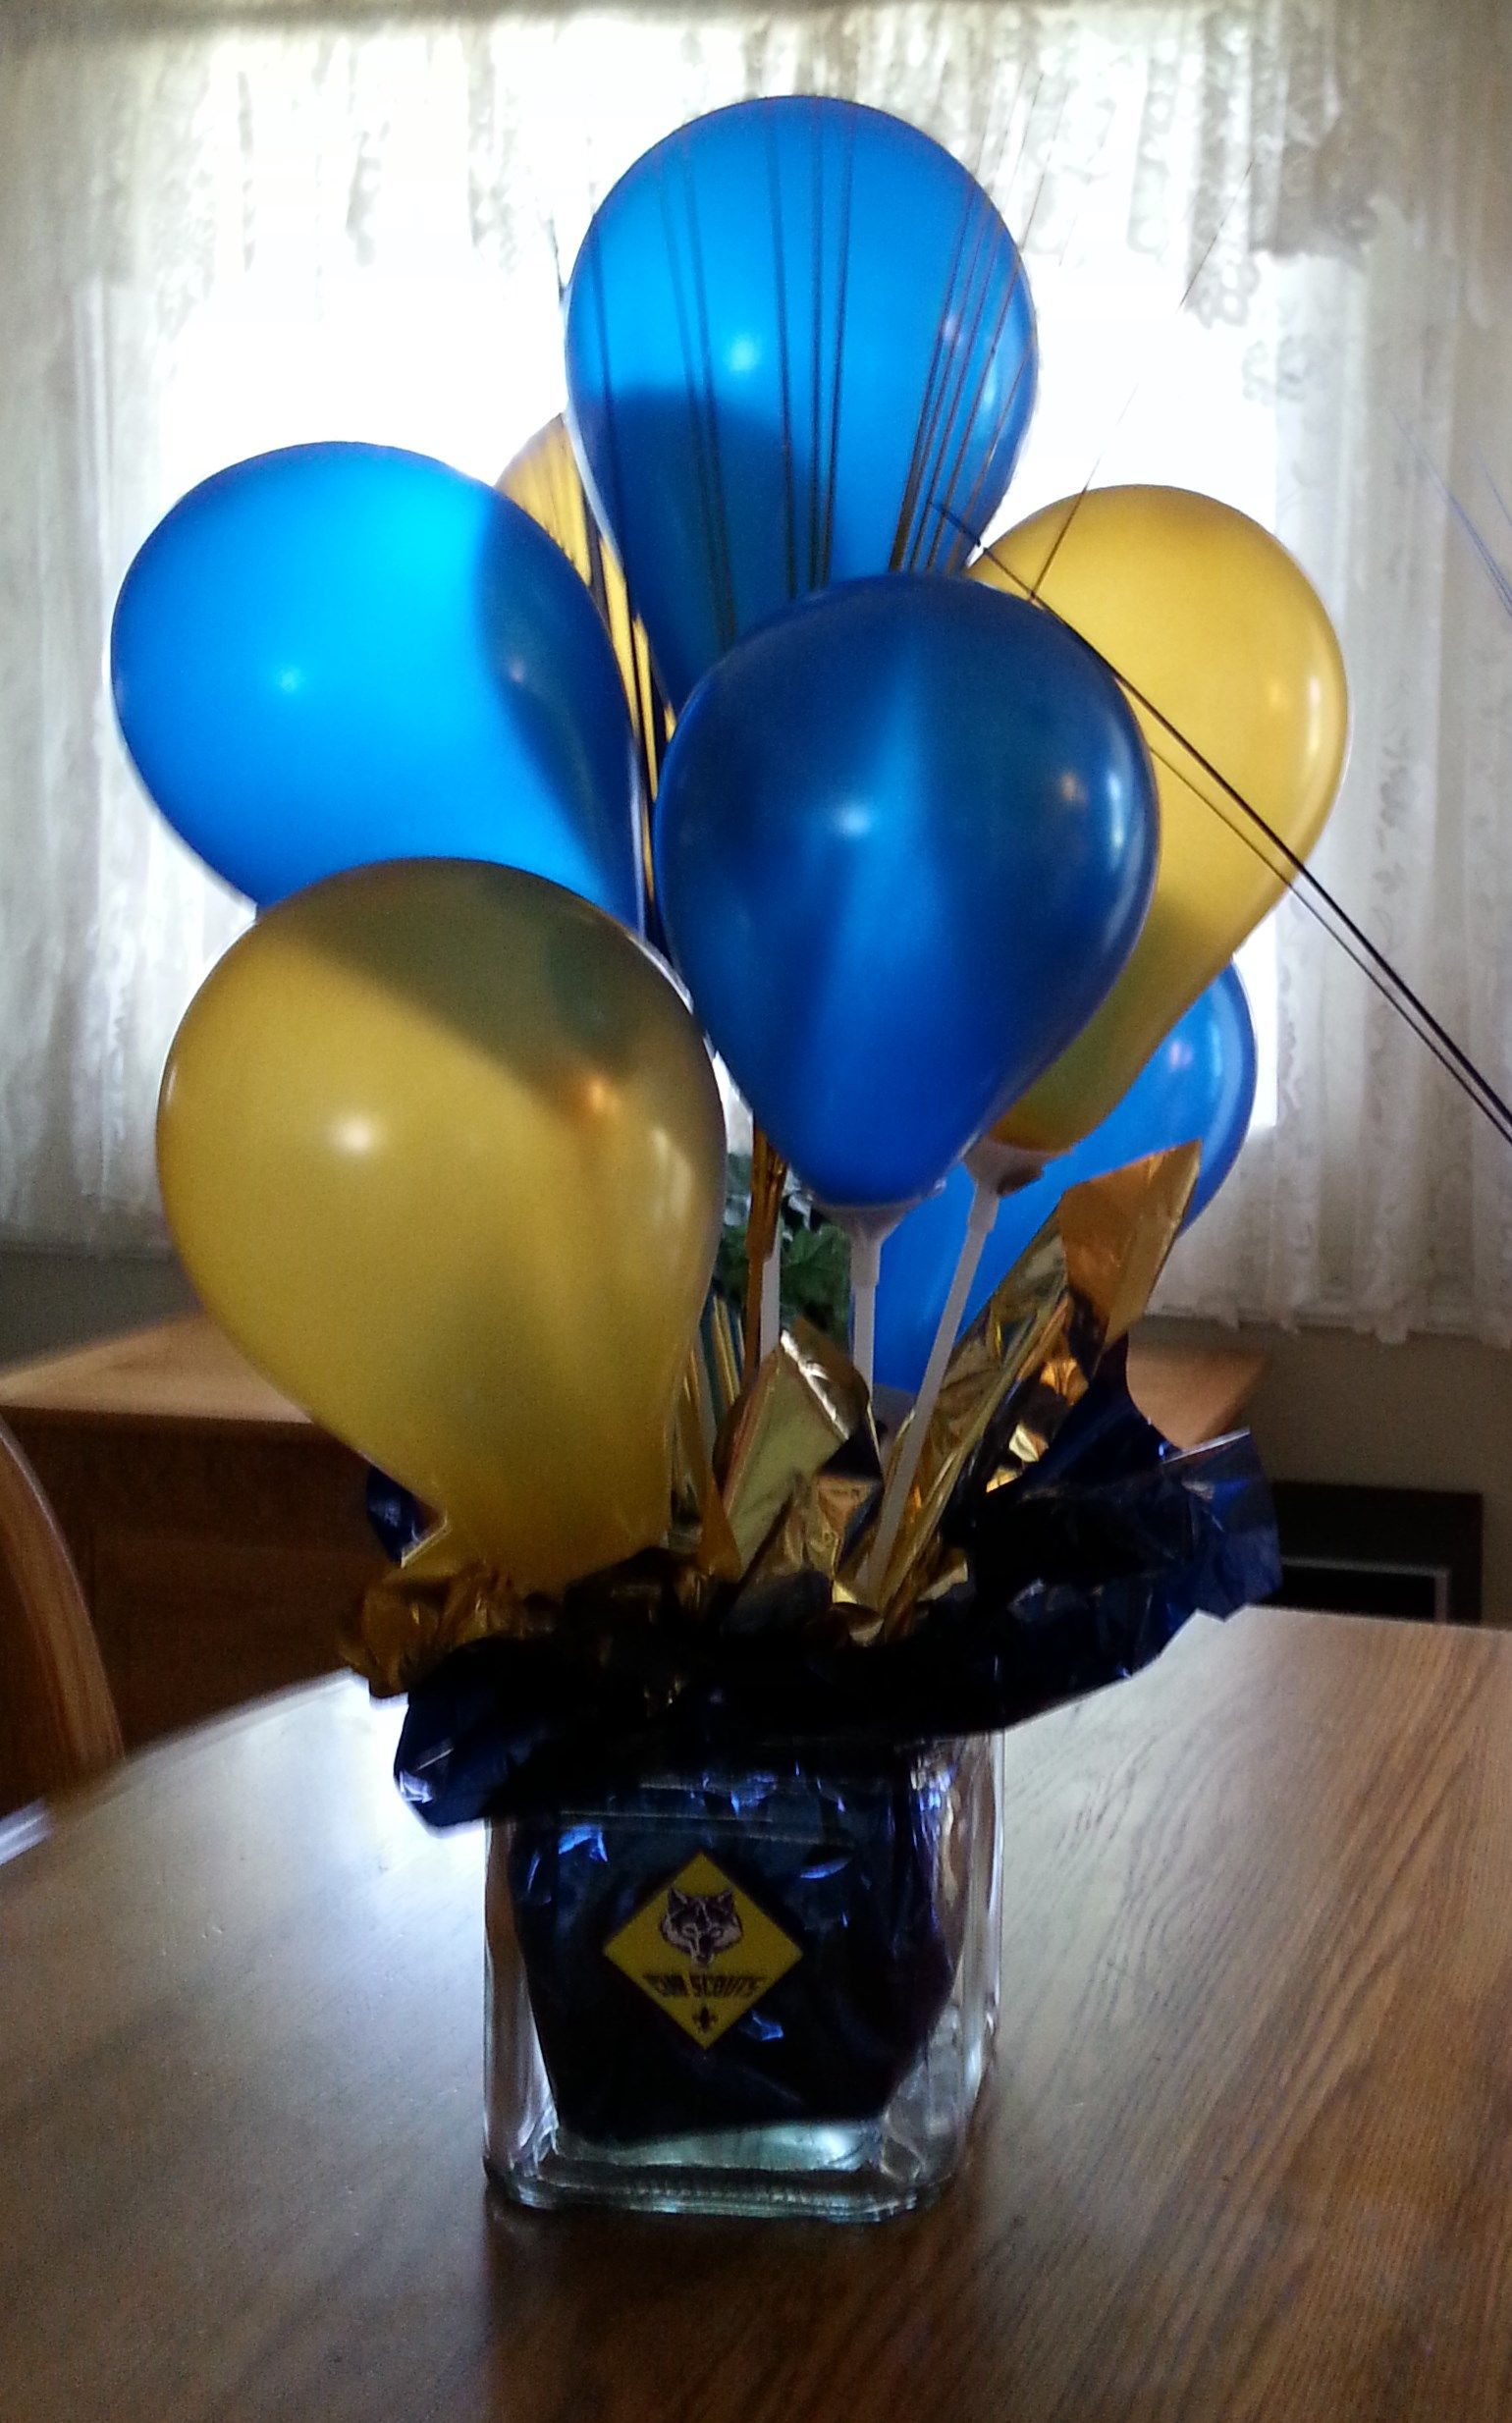 Cub scout blue and gold balloon centerpiece using